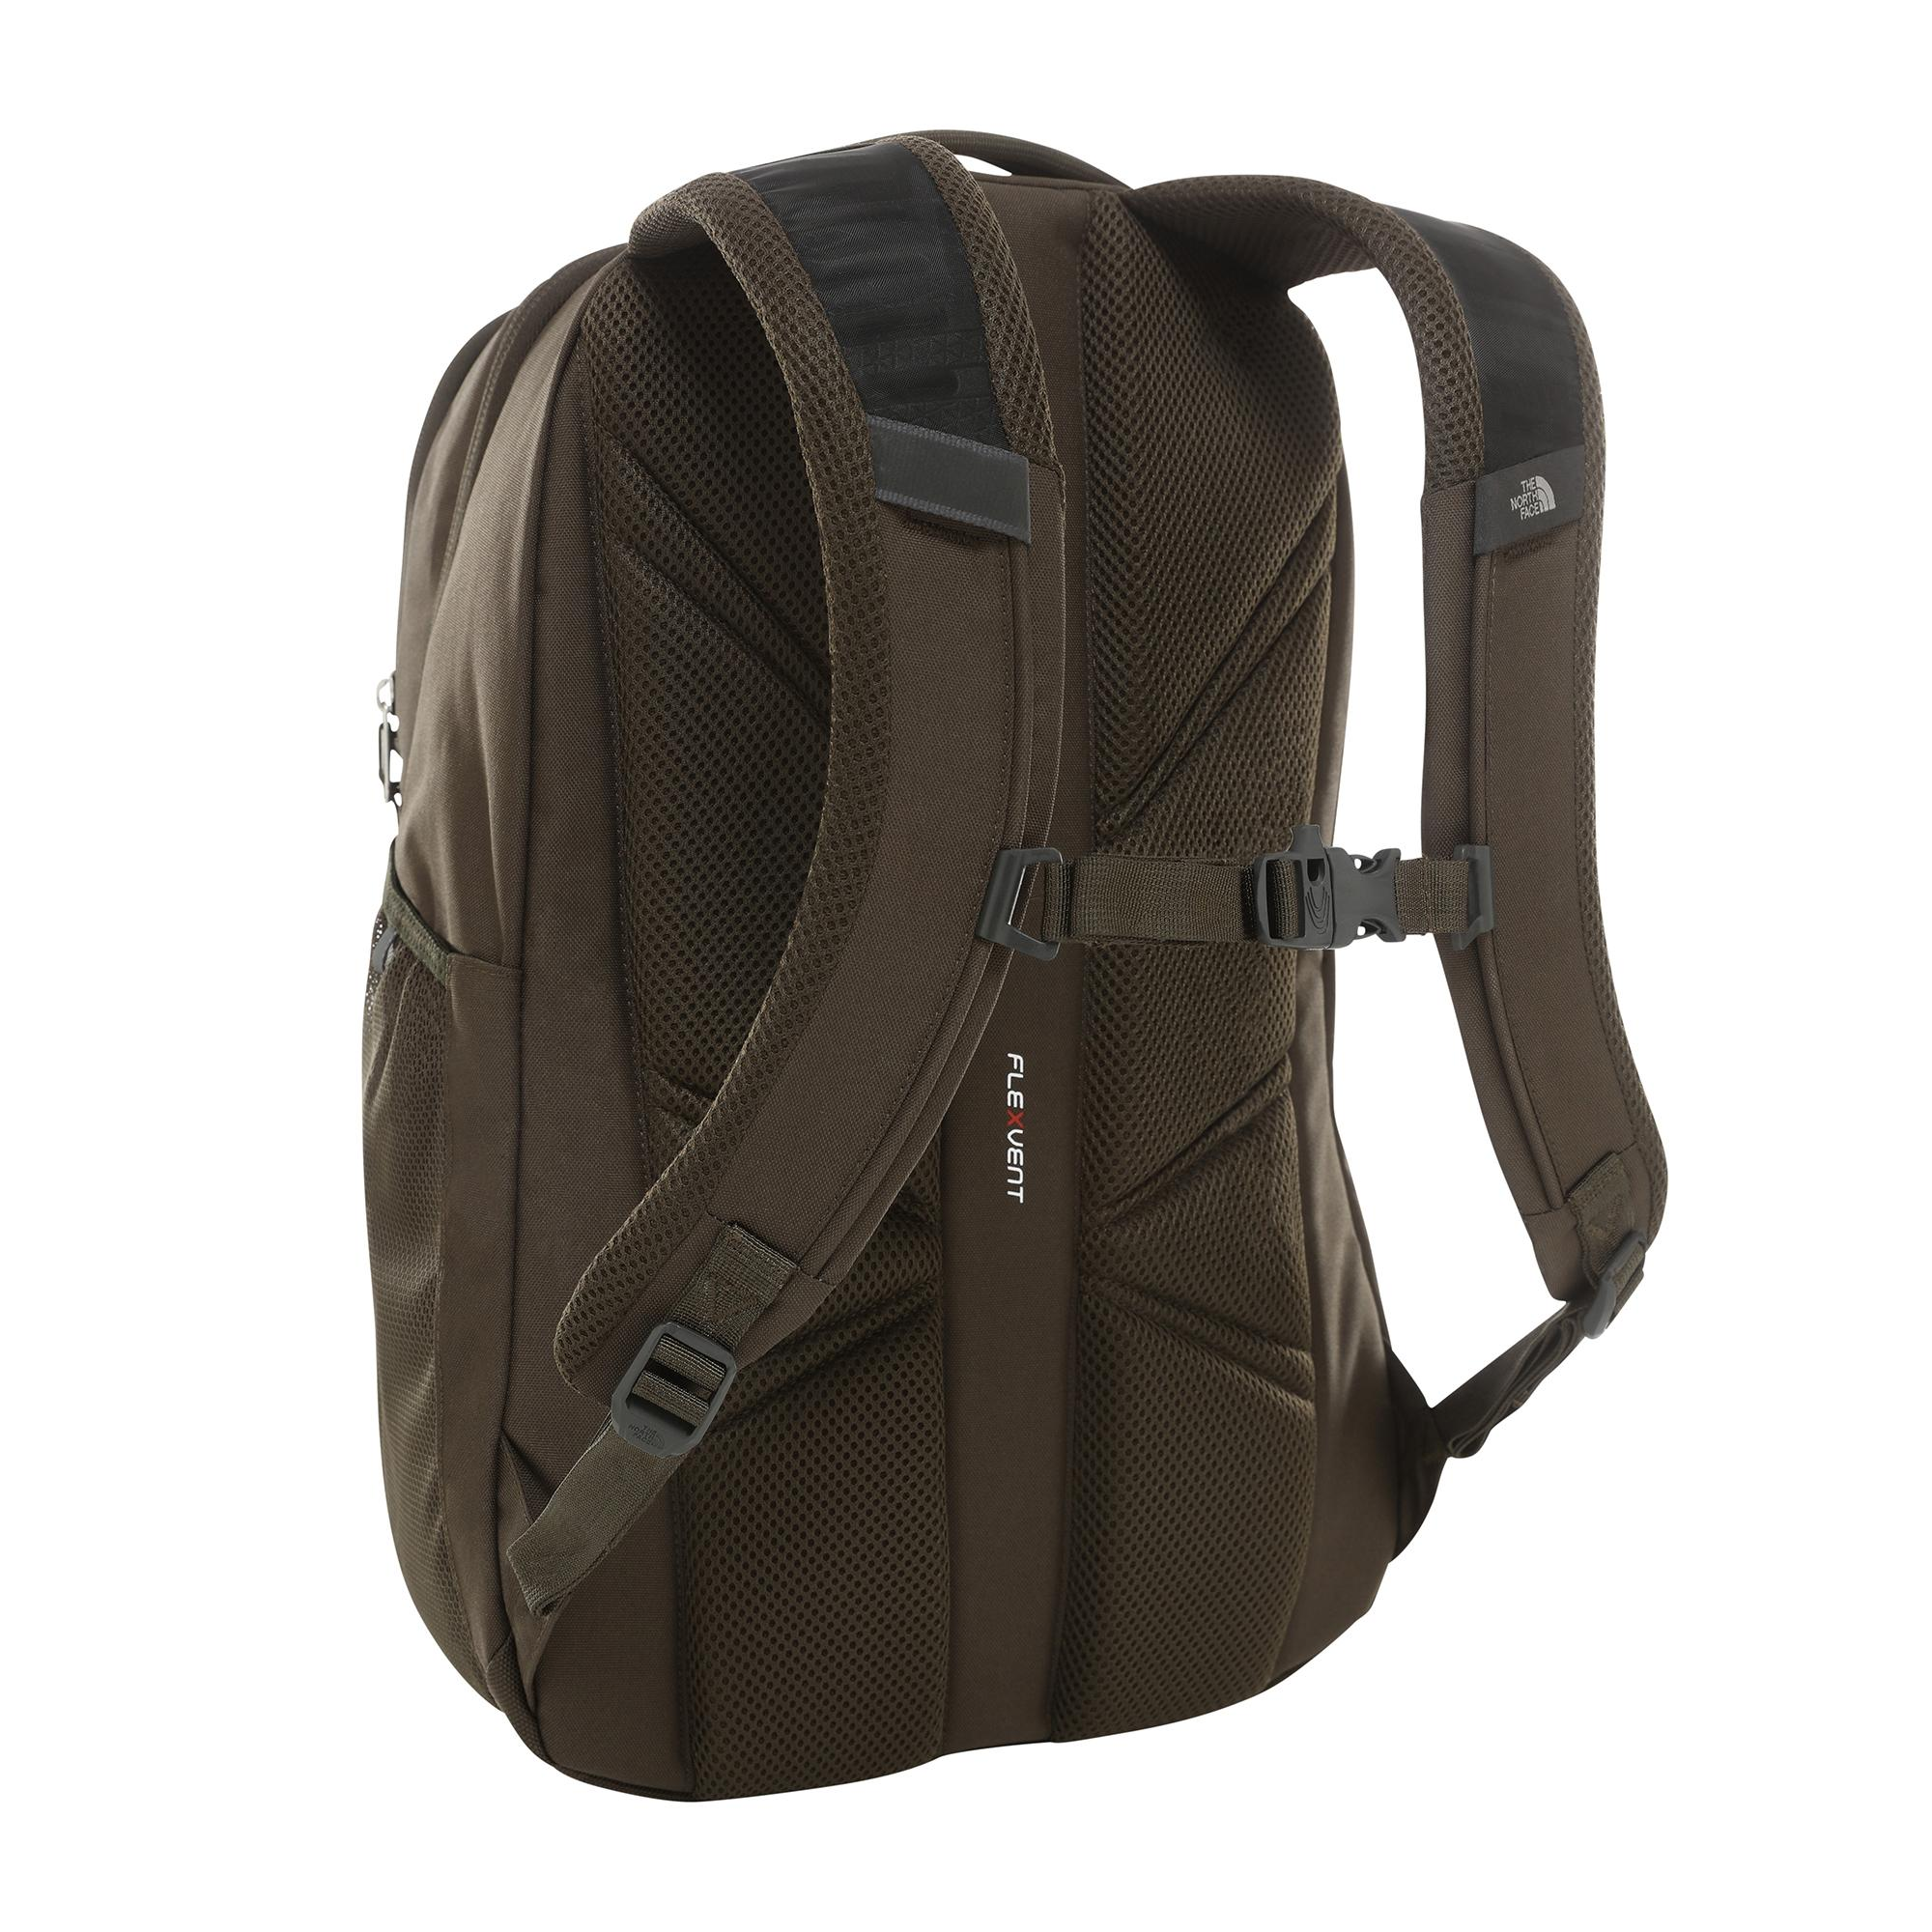 aeac985b50c9 THE NORTH FACE JESTER